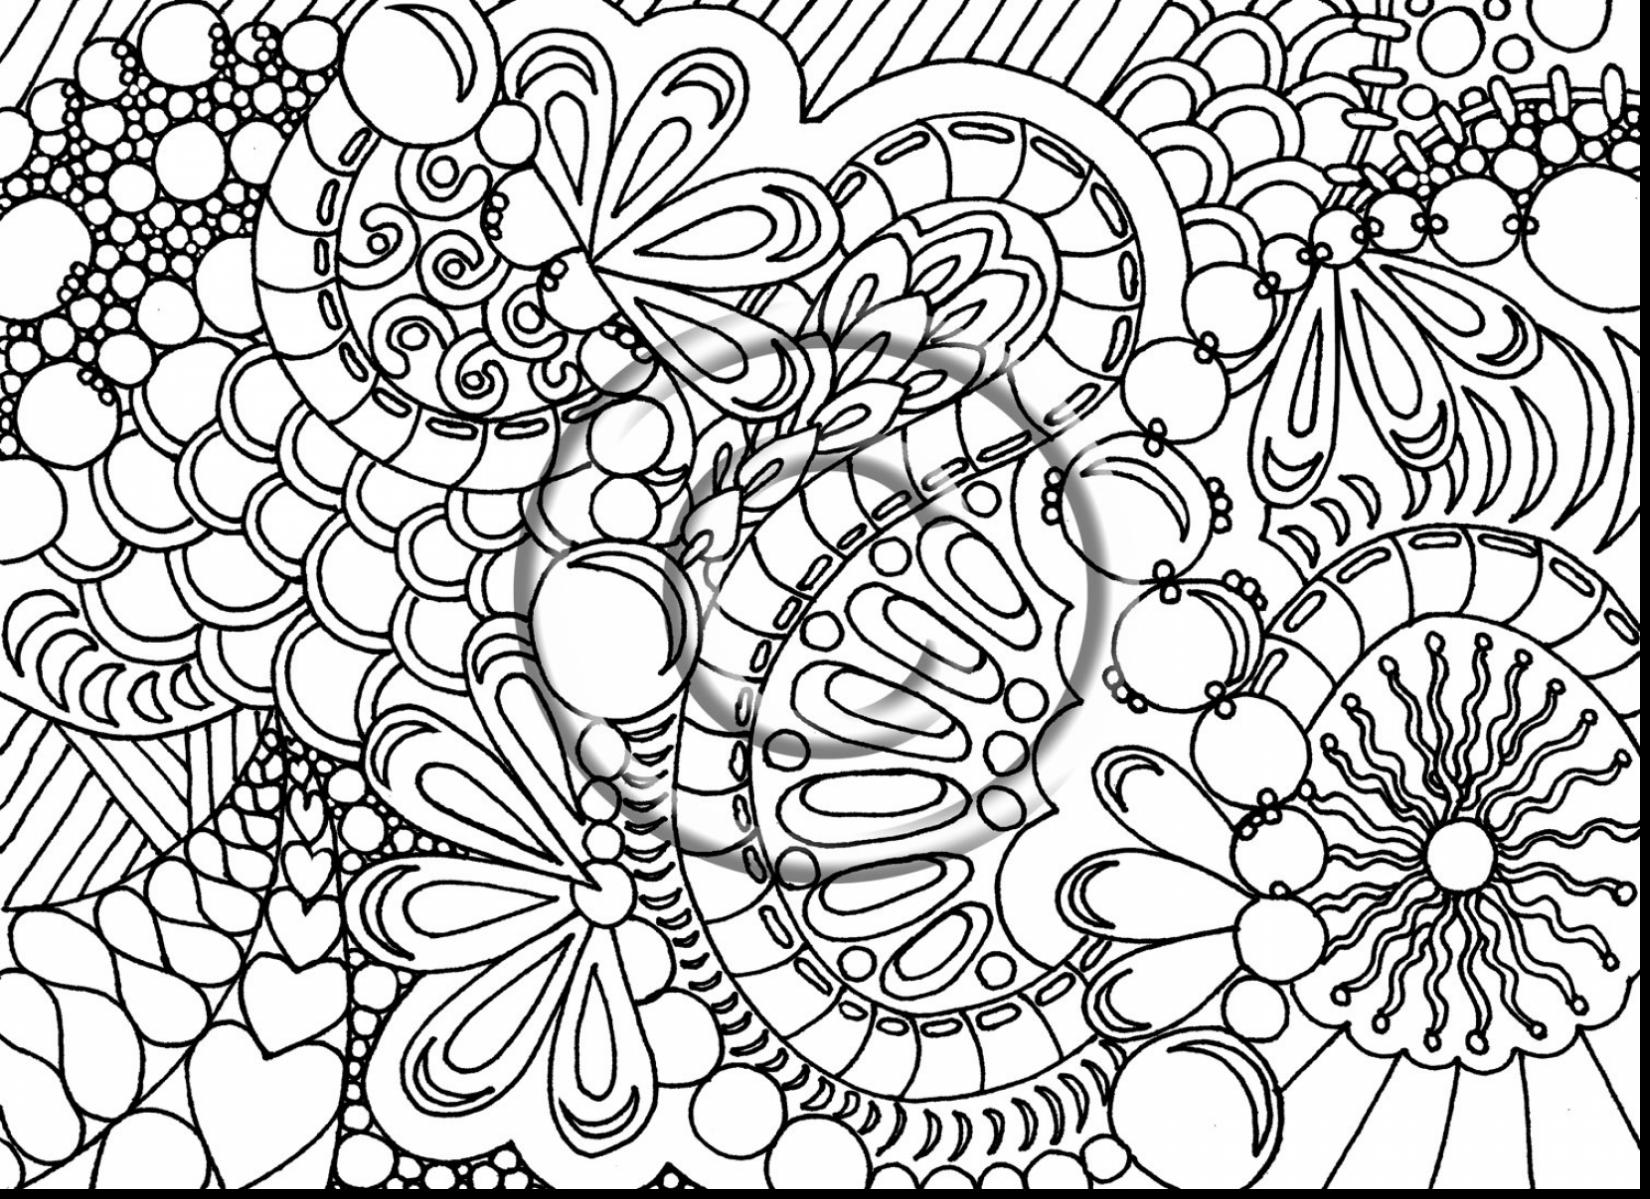 Merry Christmas Coloring Pages Pdf With Free Printable For Adults